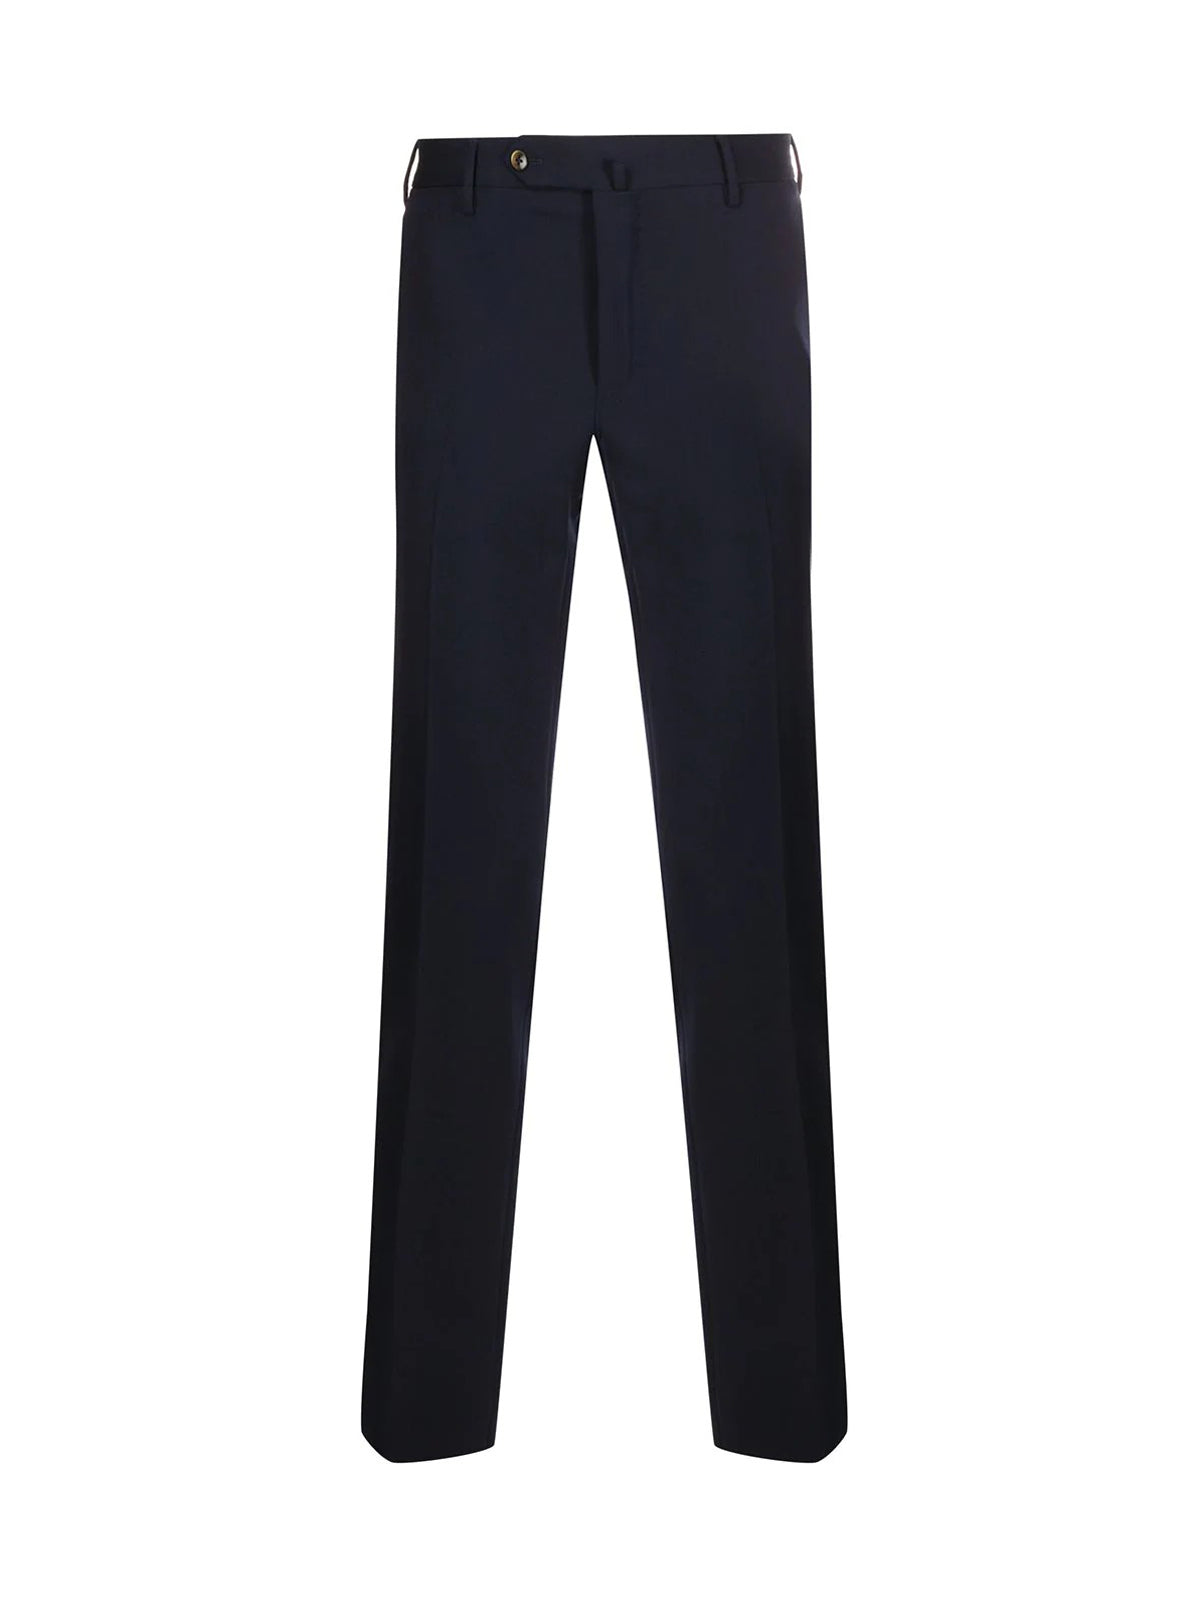 Chino slim trousers